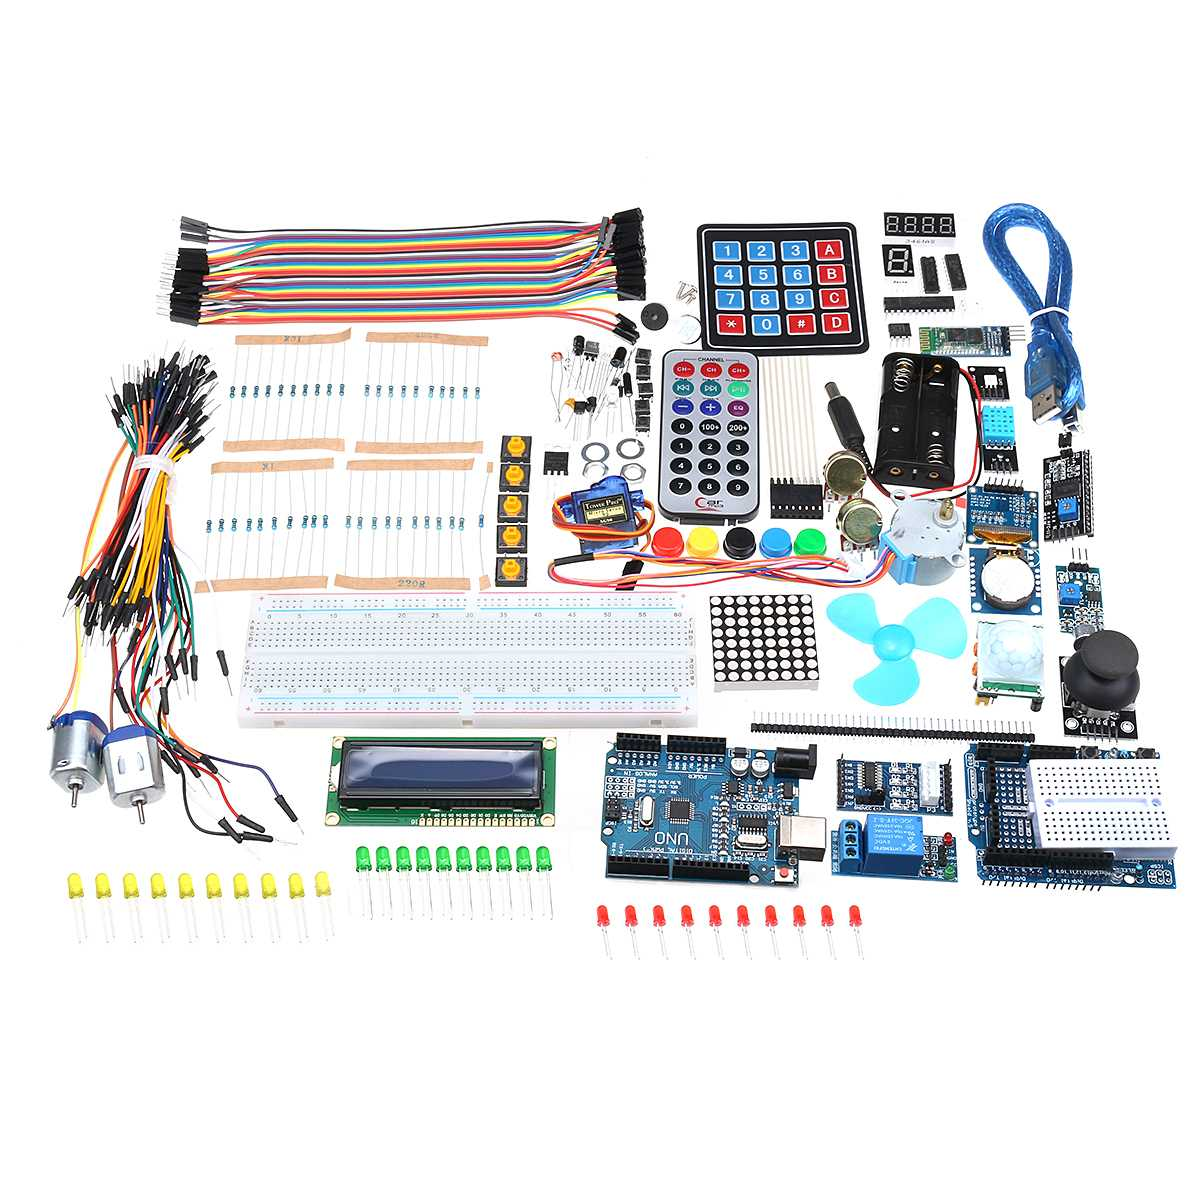 Pour UNO R3 Starter Kit Avec OLED SPI Bluetooth LCD1602 RTC DHT11 Pour Arduino SMD Version